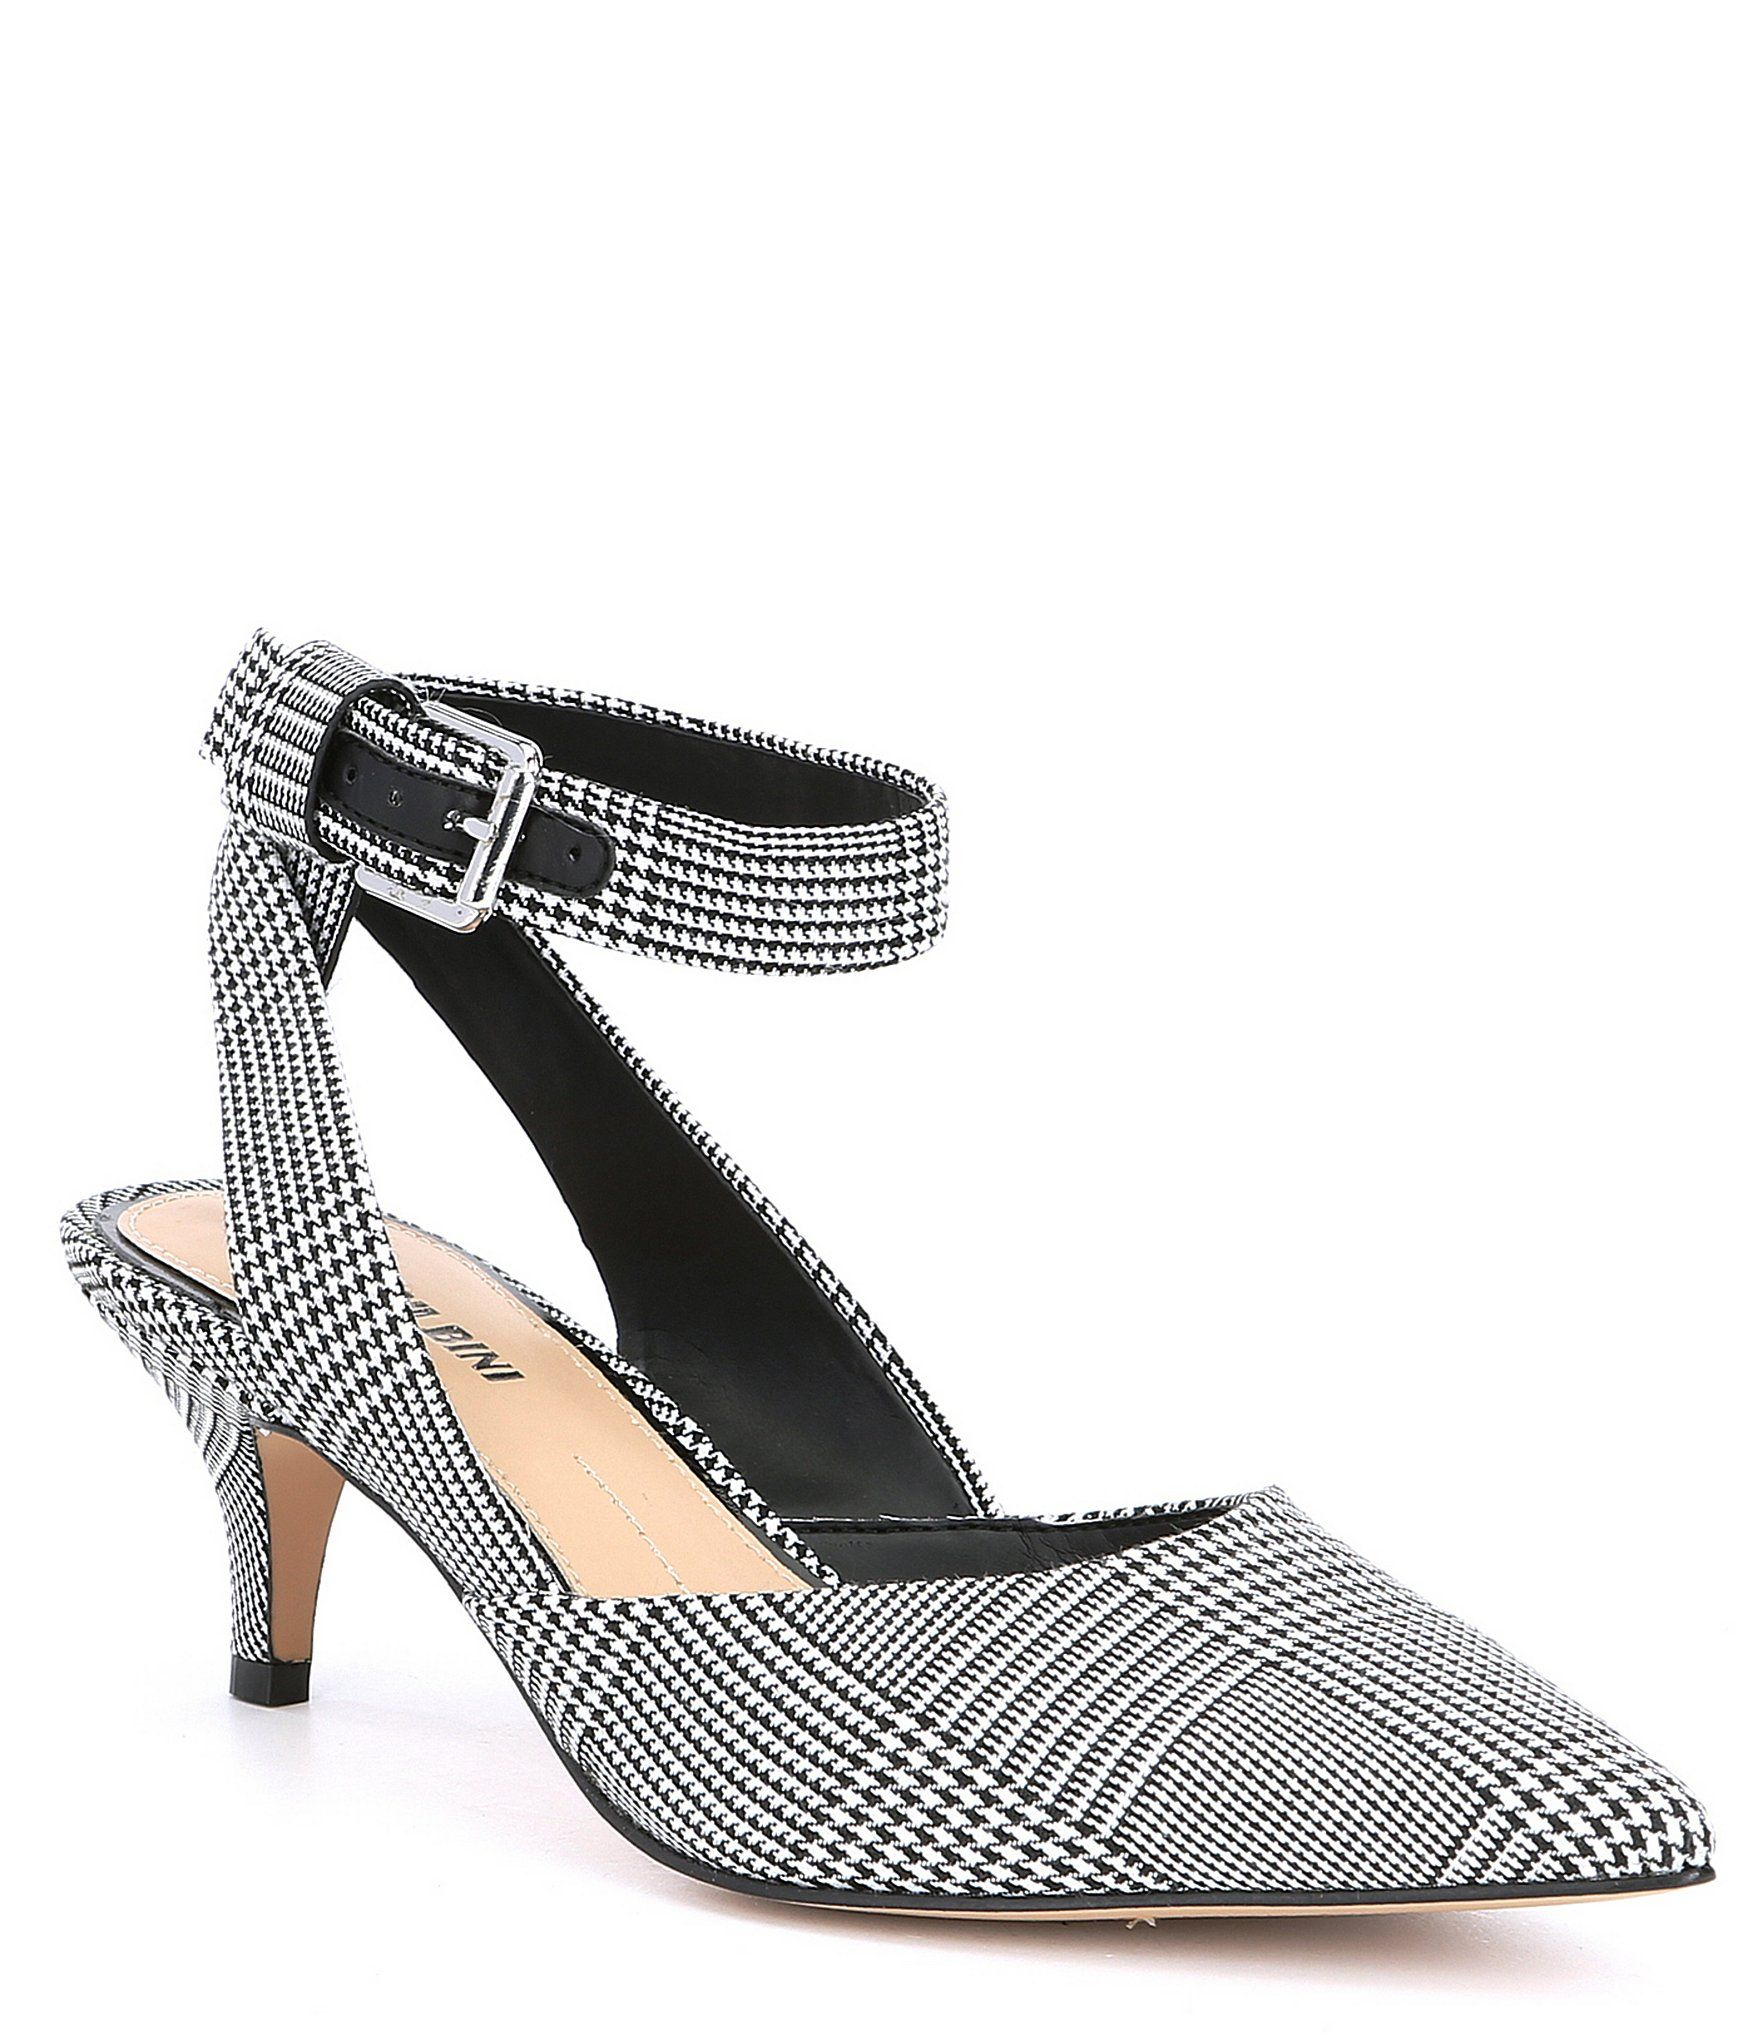 81983b4d71d Shop for Gianni Bini Rizbee Menswear Inspired Plaid Ankle Wrap Sling Pumps  at Dillards.com. Visit Dillards.com to find clothing